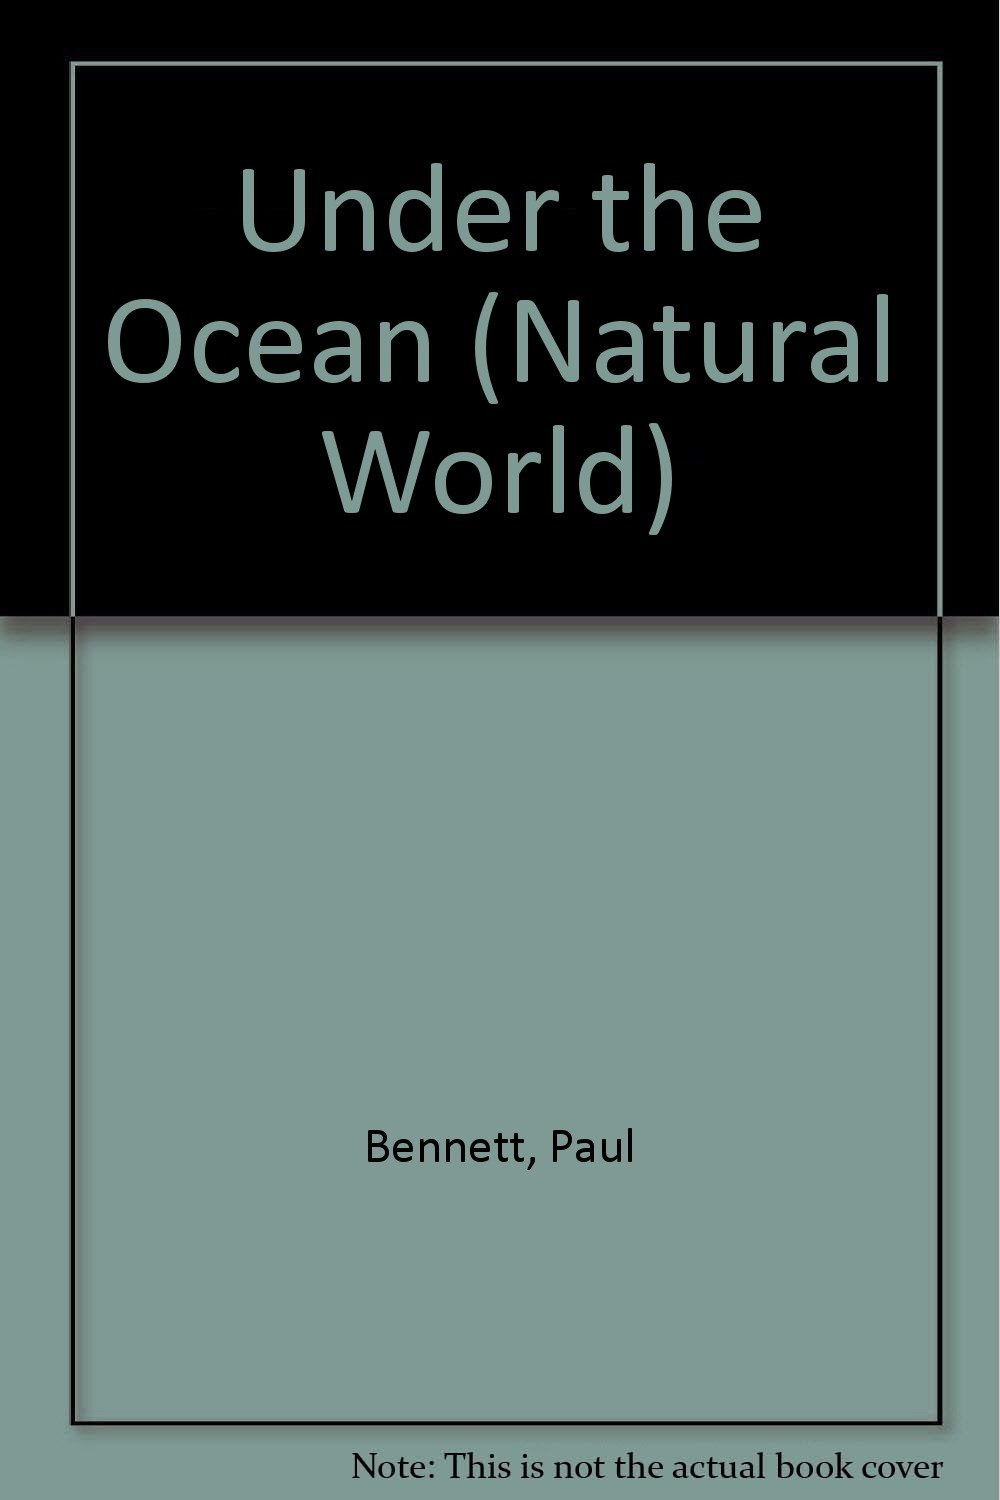 Under the ocean (The natural world)